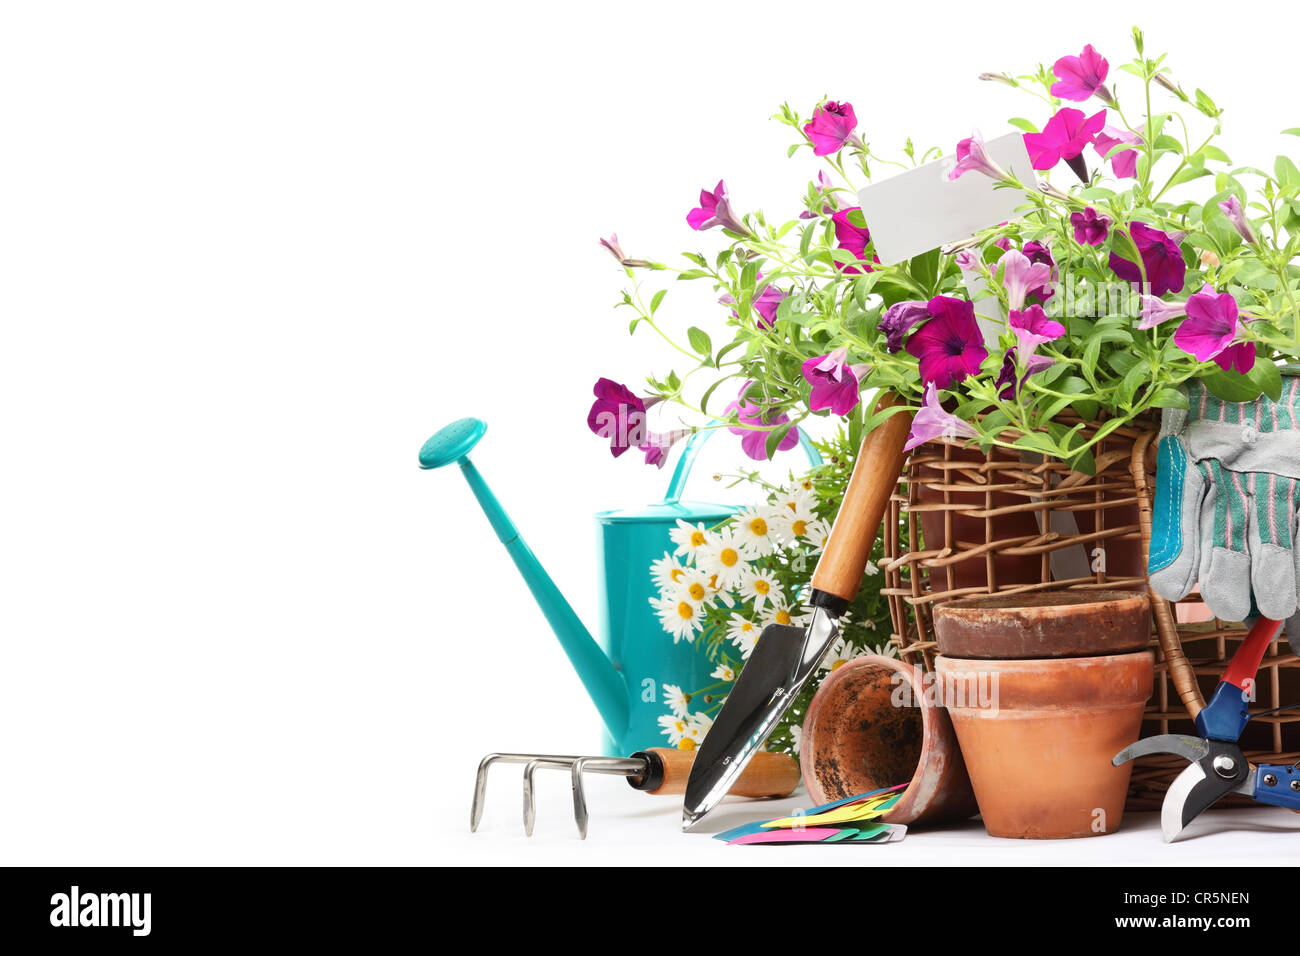 Gardening tools and flowers isolated on white. - Stock Image